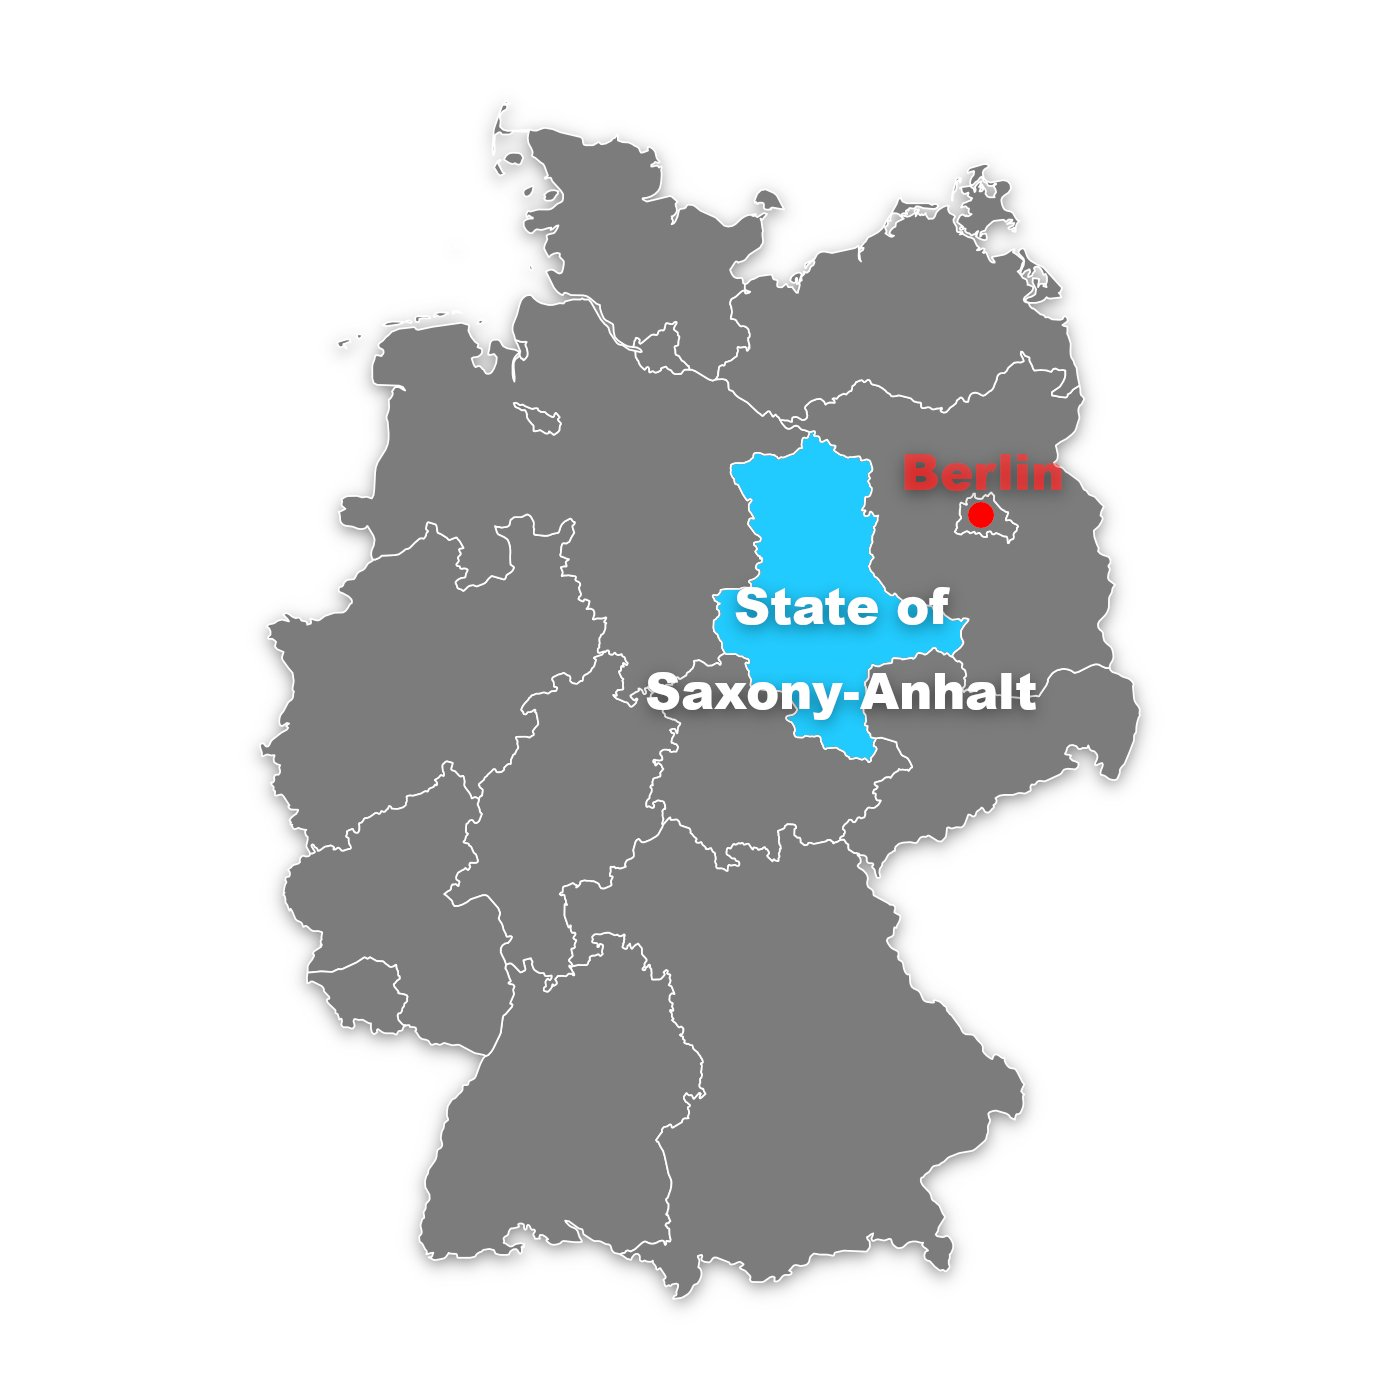 state of saxony-anhalt in germany